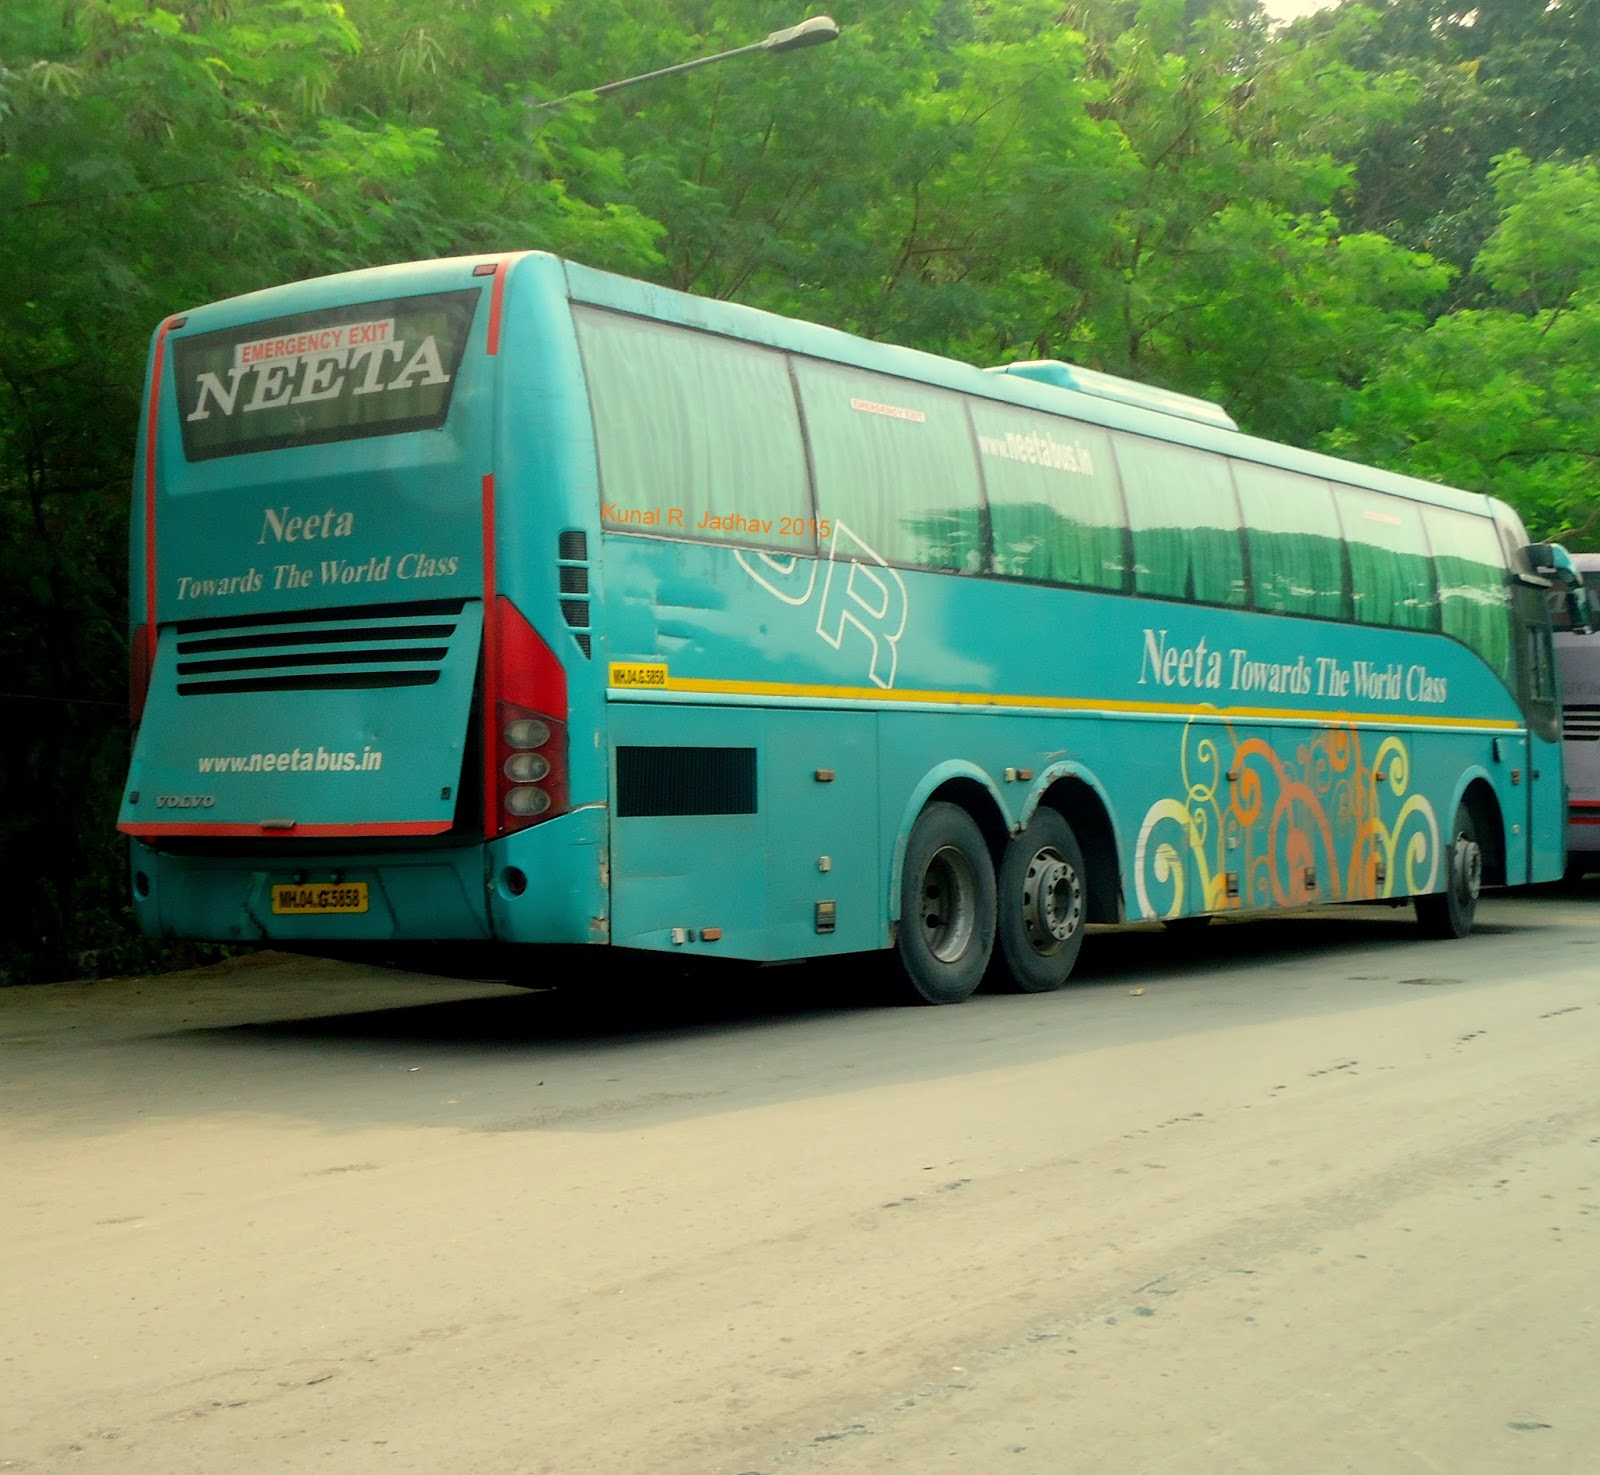 A Scania, VOLVO, Mercedes Benz Bus and Vehicle Enthusiast from India